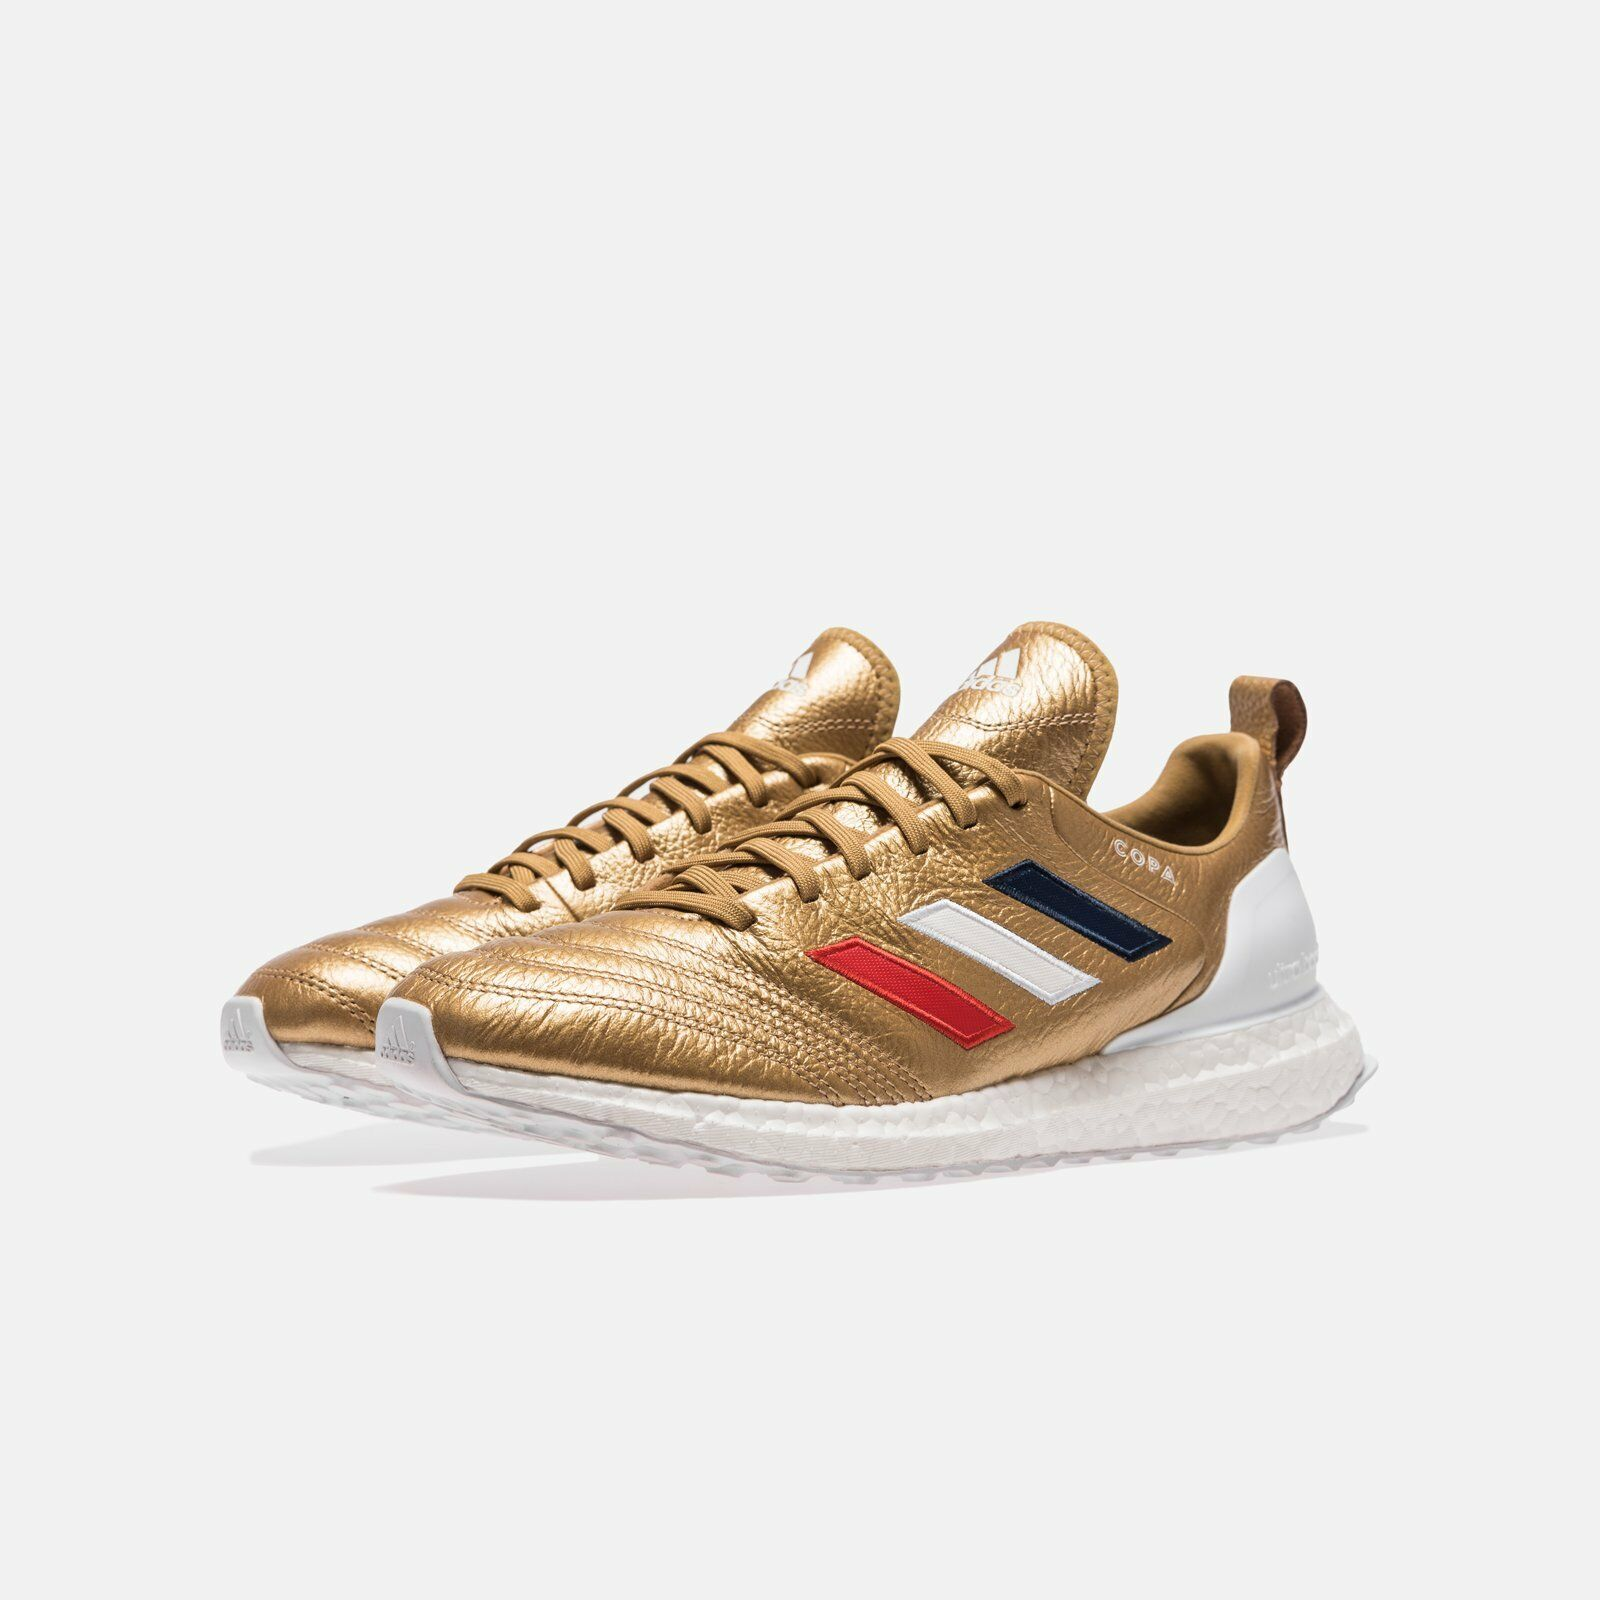 Adidas Soccer Kith Copa Mundial 18 Ultraboost 7.5 AACG7065 Leather gold USA Box